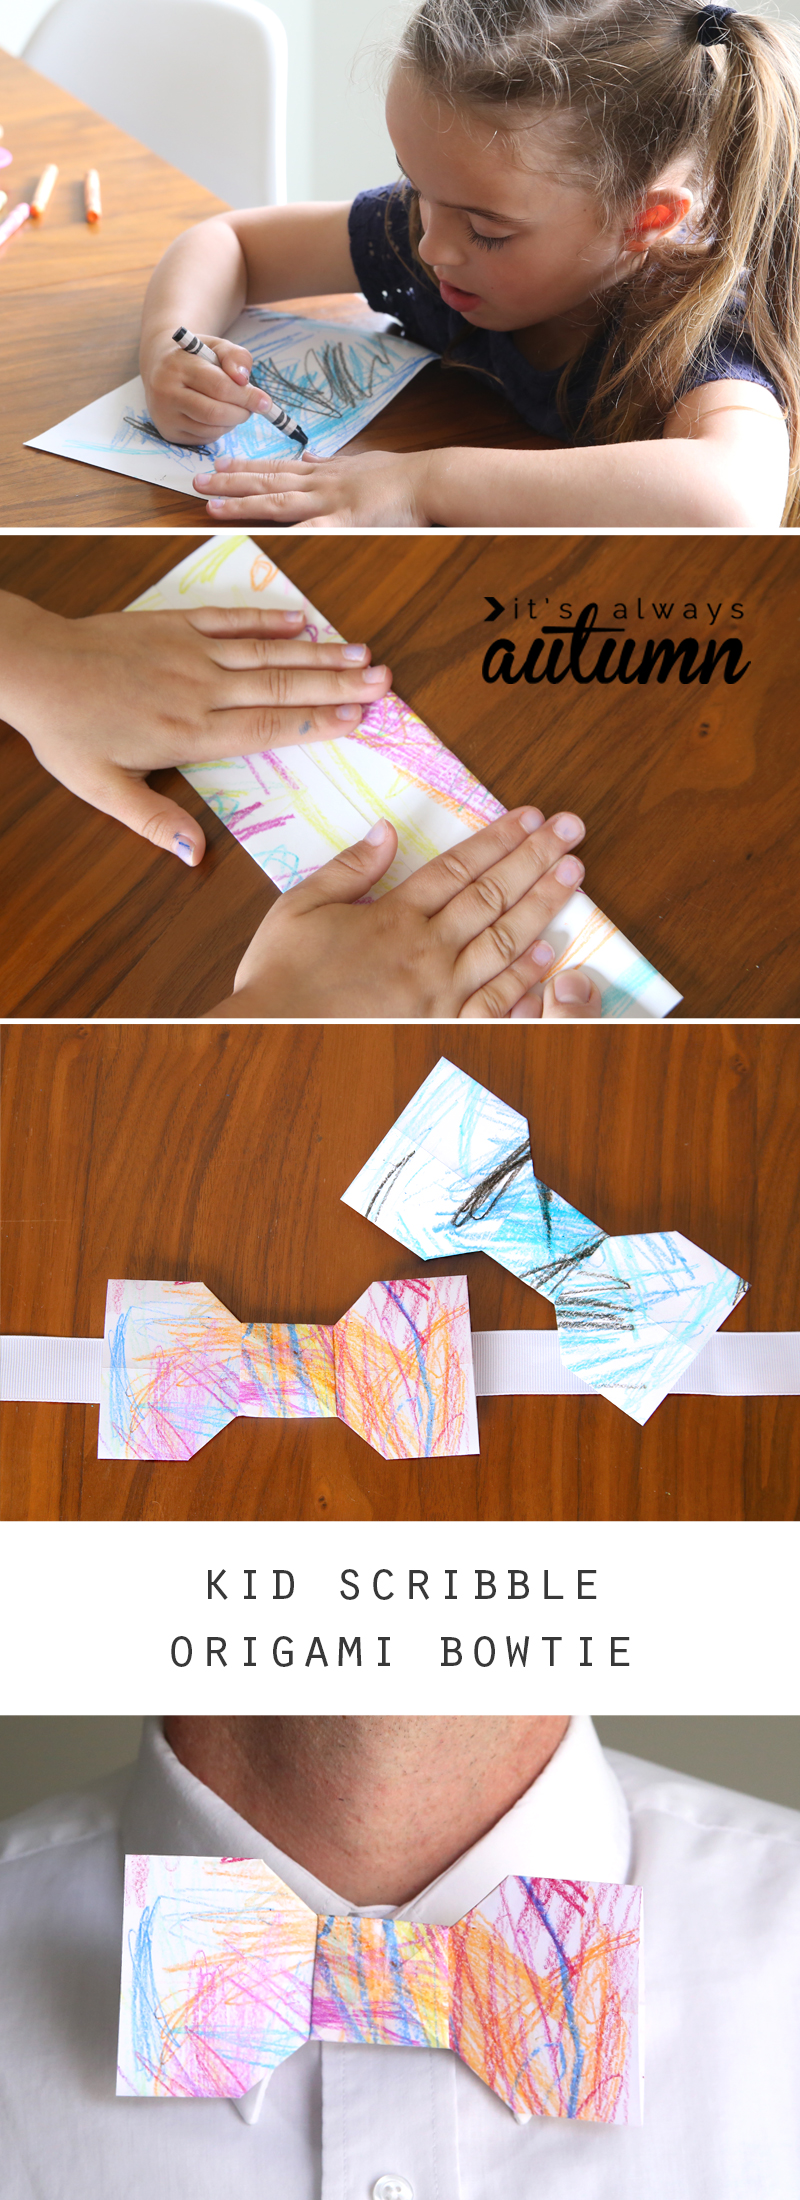 What a fun Father's Day gift kids can make! A kid scribble origami bowtie. Let kids color the paper, then fold up the bowtie and hot glue to a ribbon so Dad can wear it. Click through for folding video.